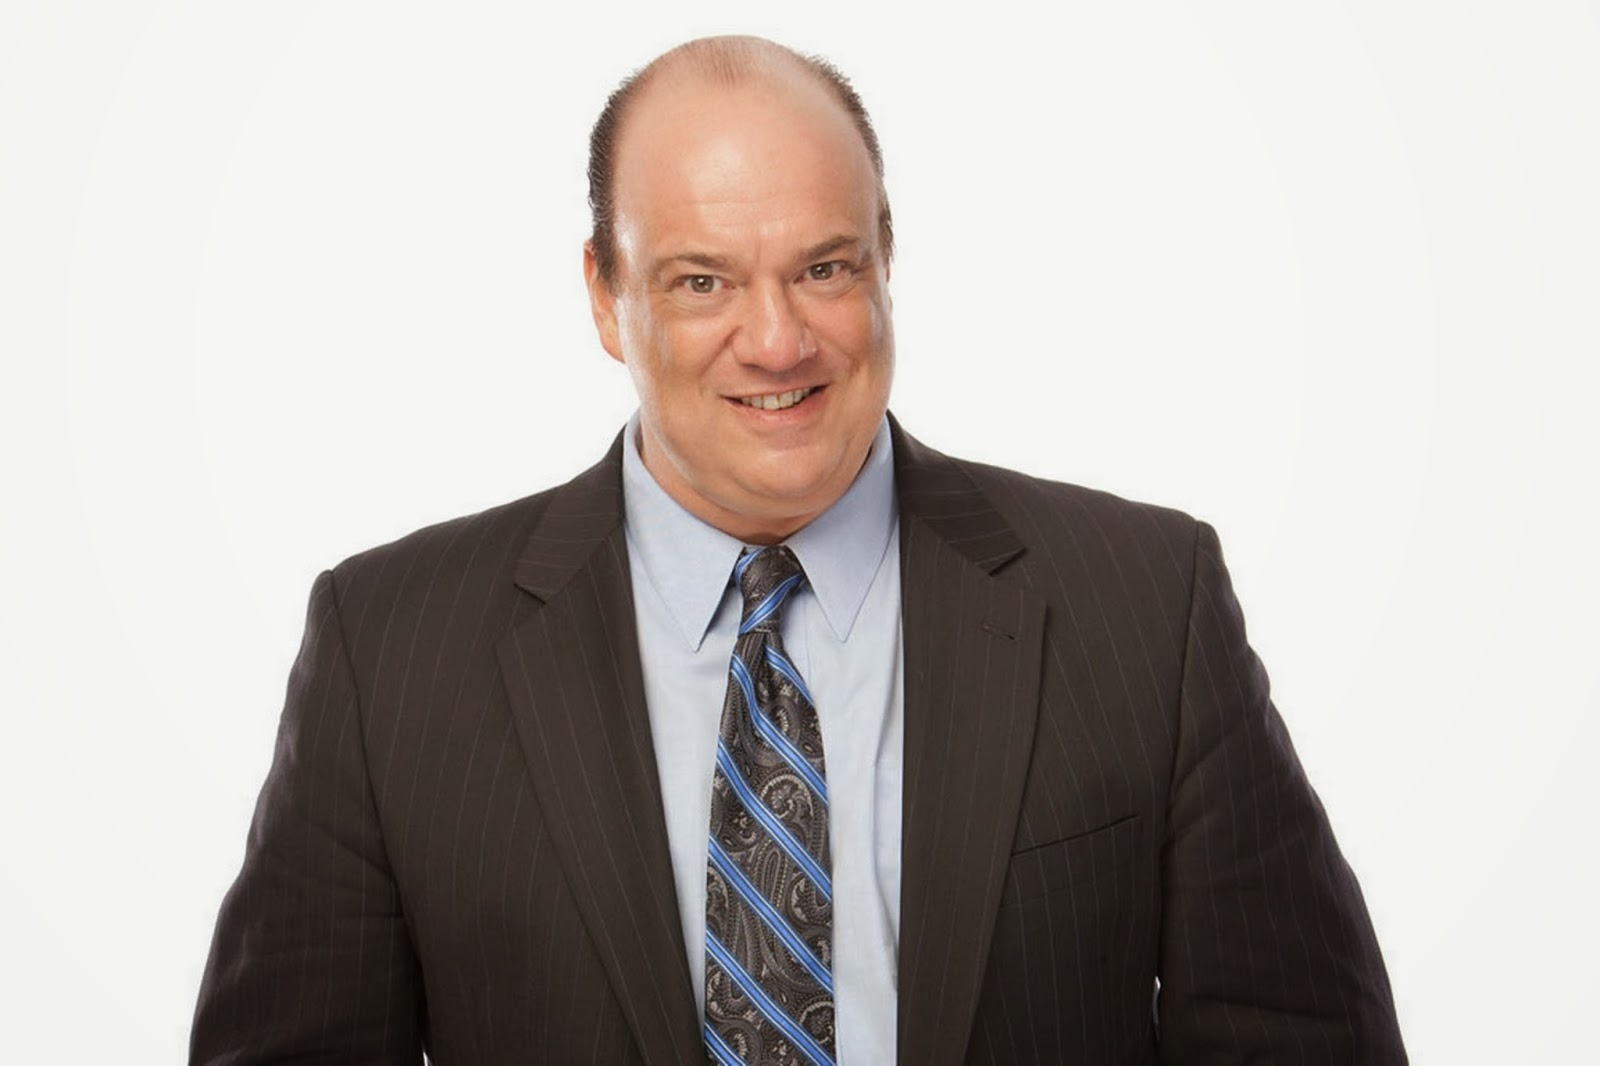 Paul Heyman Hd Wallpapers Free Download